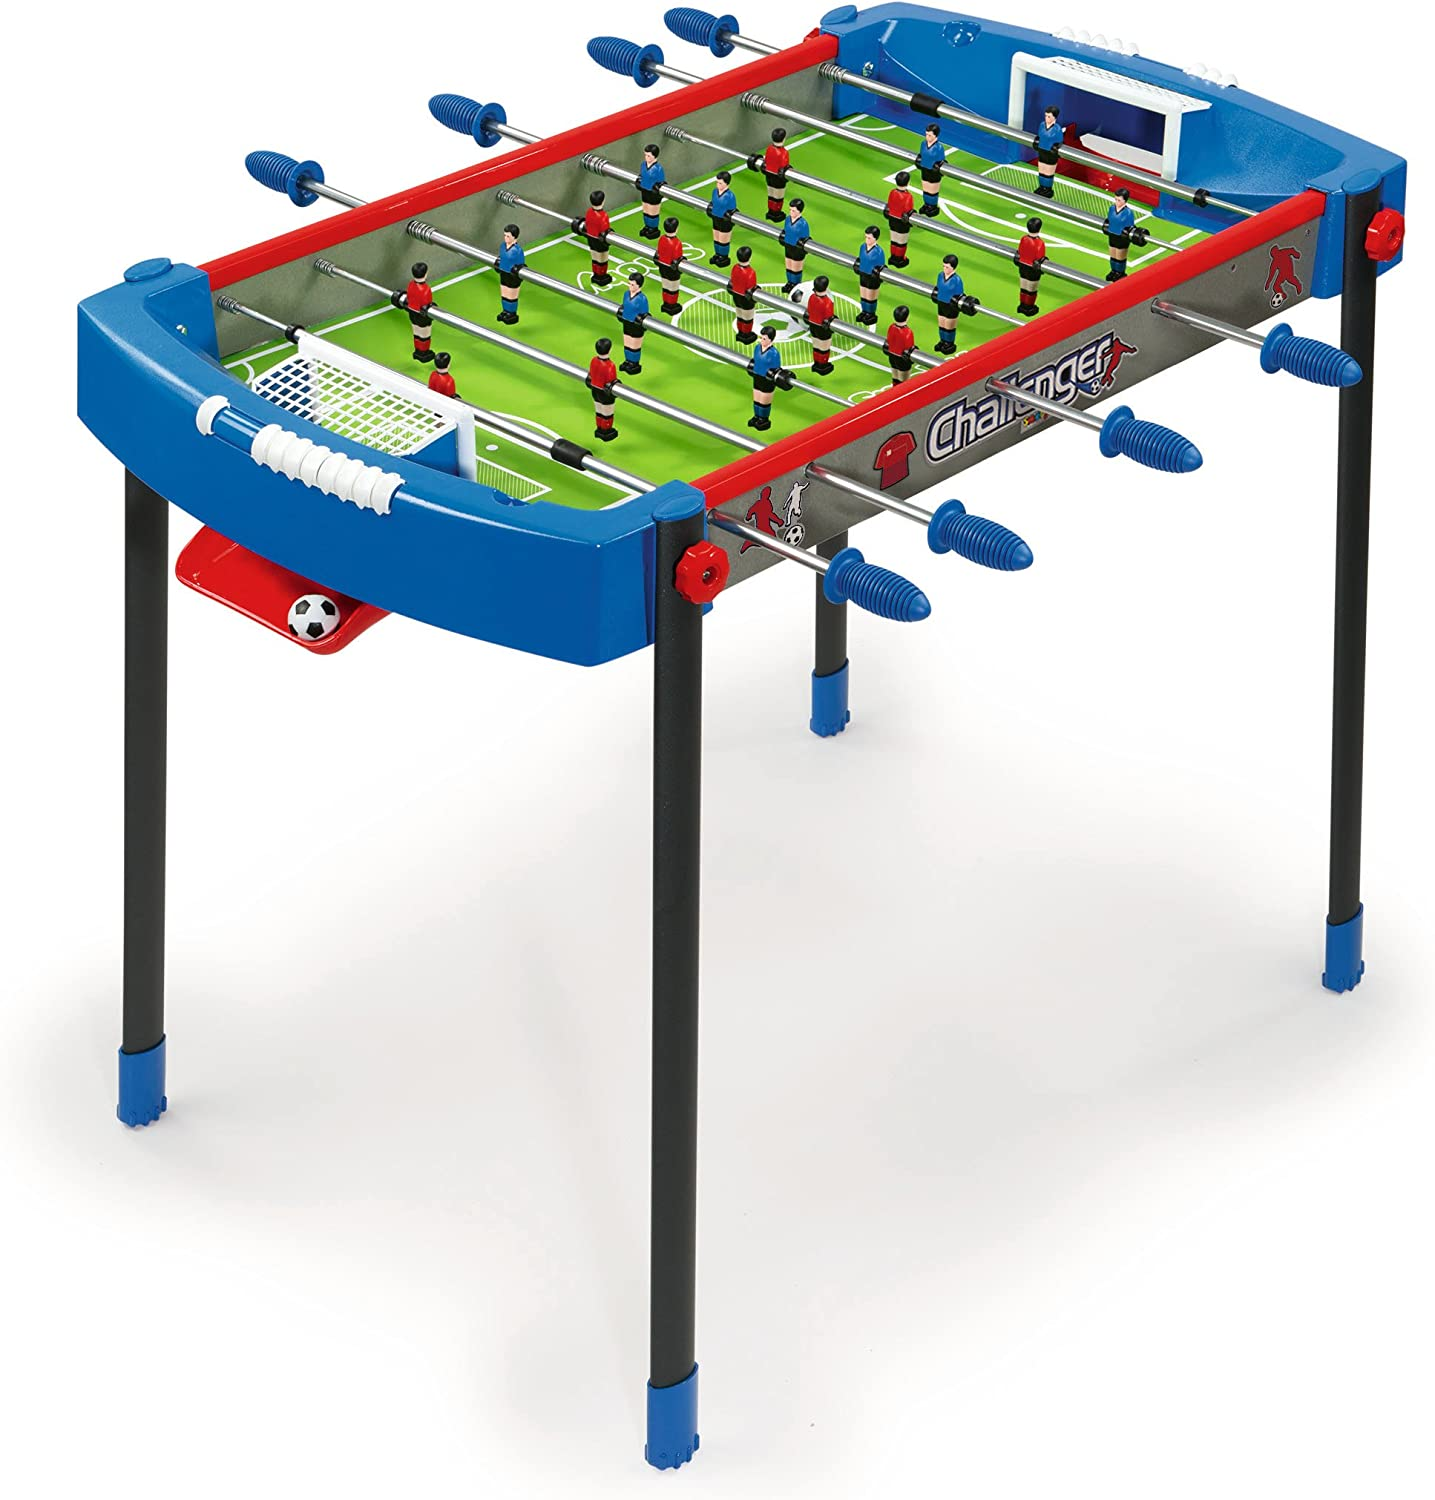 Smoby - Futbolín Challenger, Color Azul (620200): Amazon.es ...